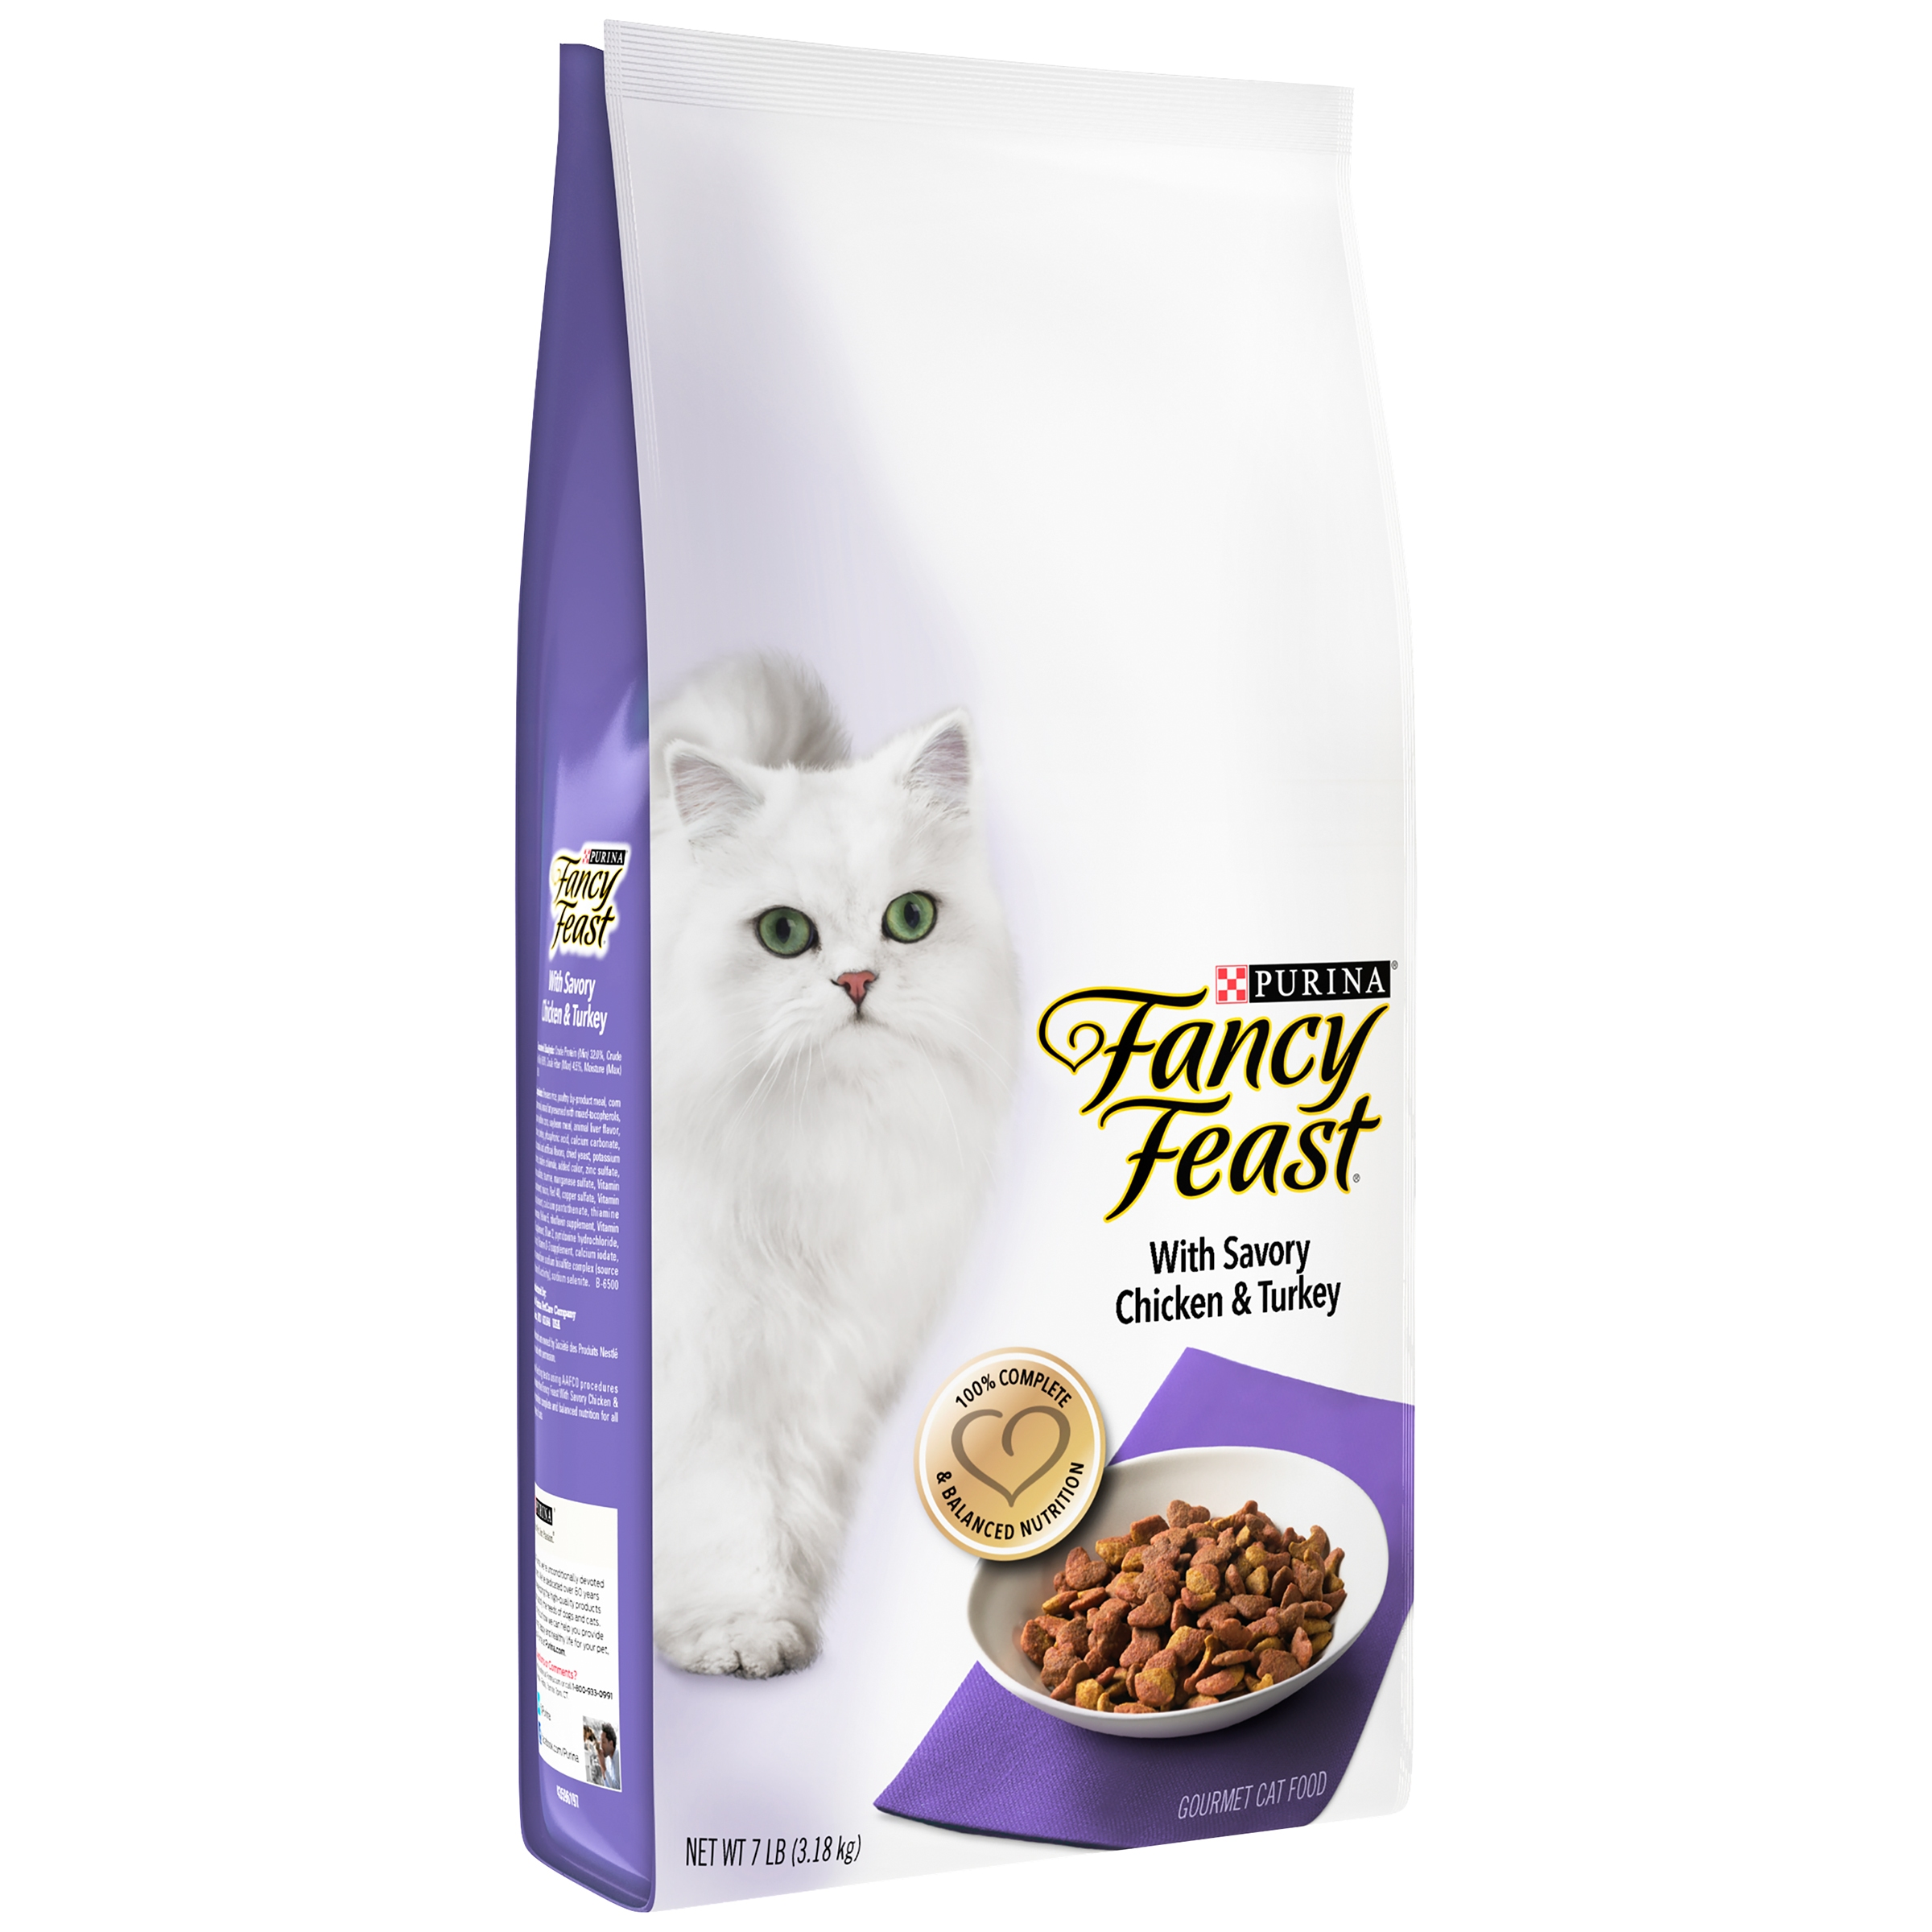 Purina Fancy Feast Gourmet Dry Cat Food With Savory Chicken & Turkey 7 lb. Bag